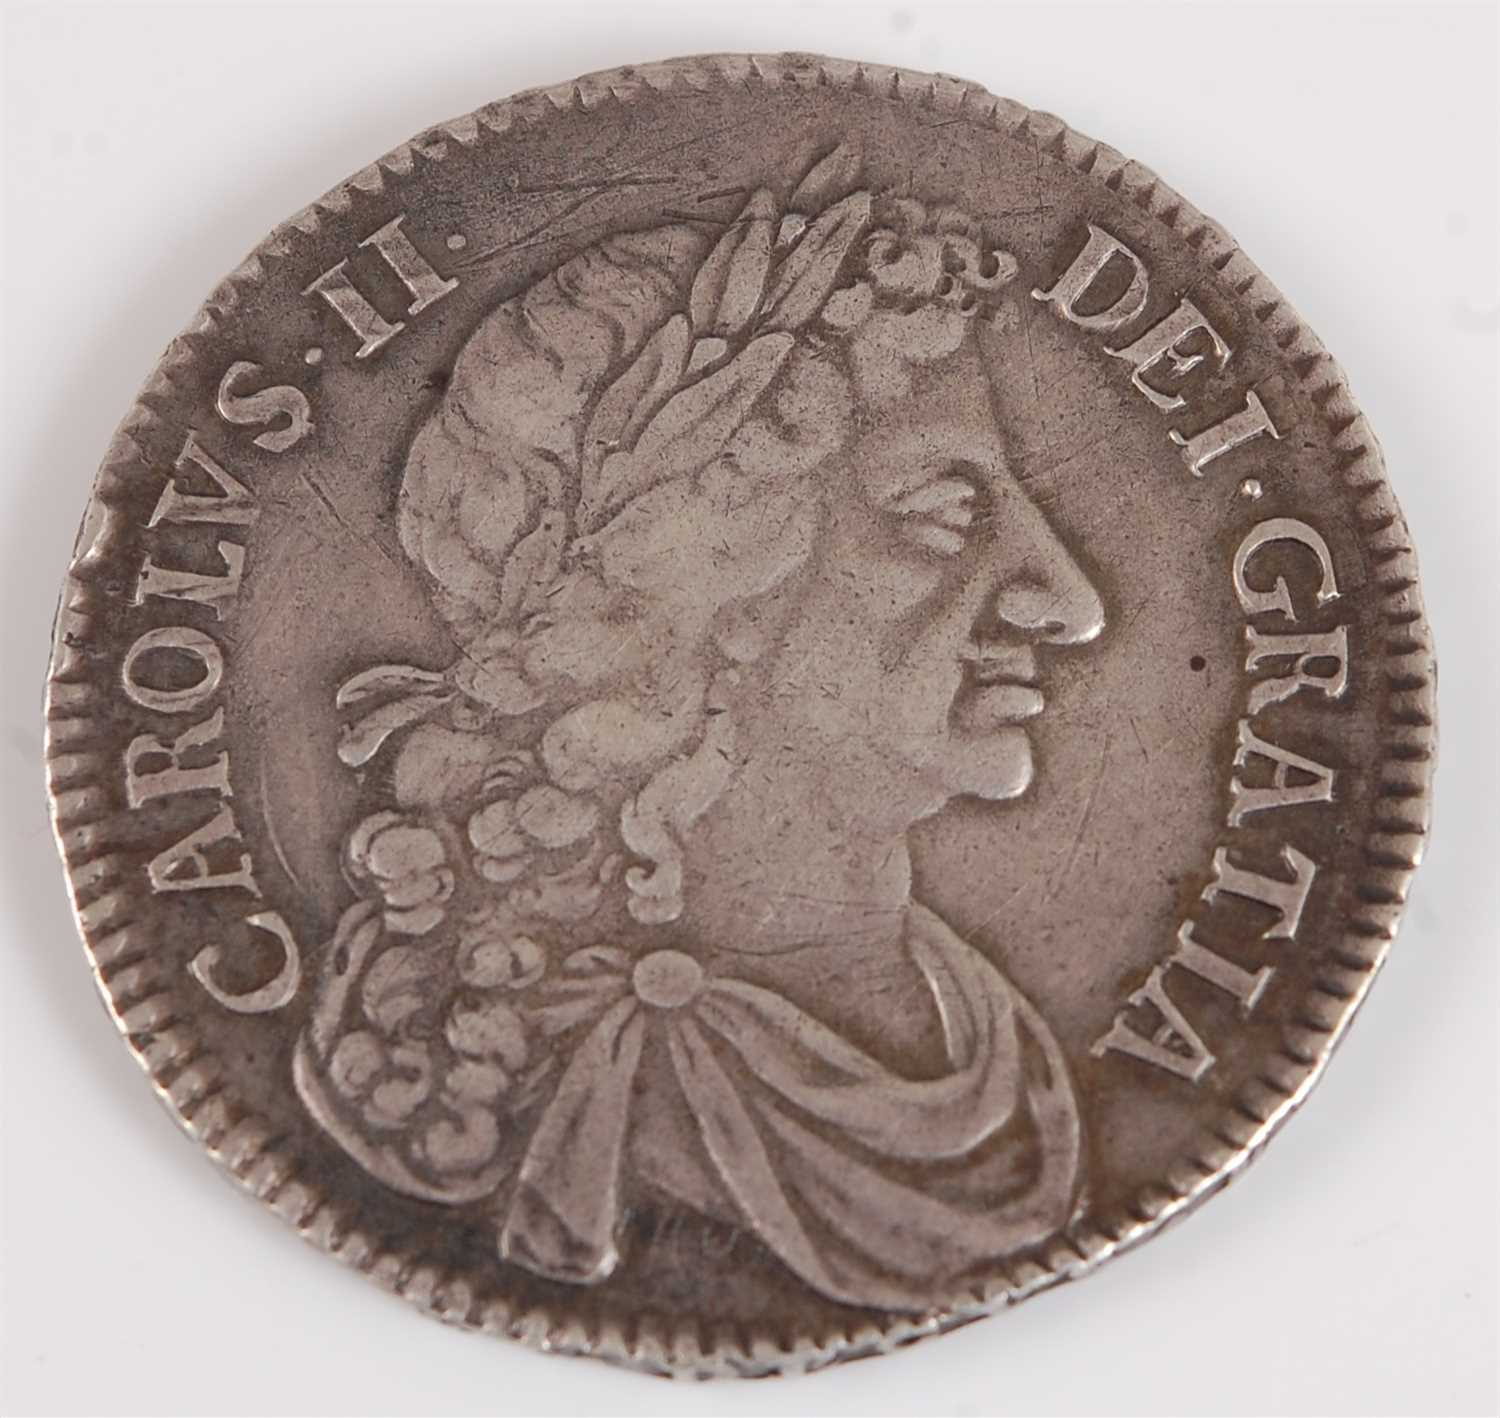 Lot 2026-England, 1677 half crown